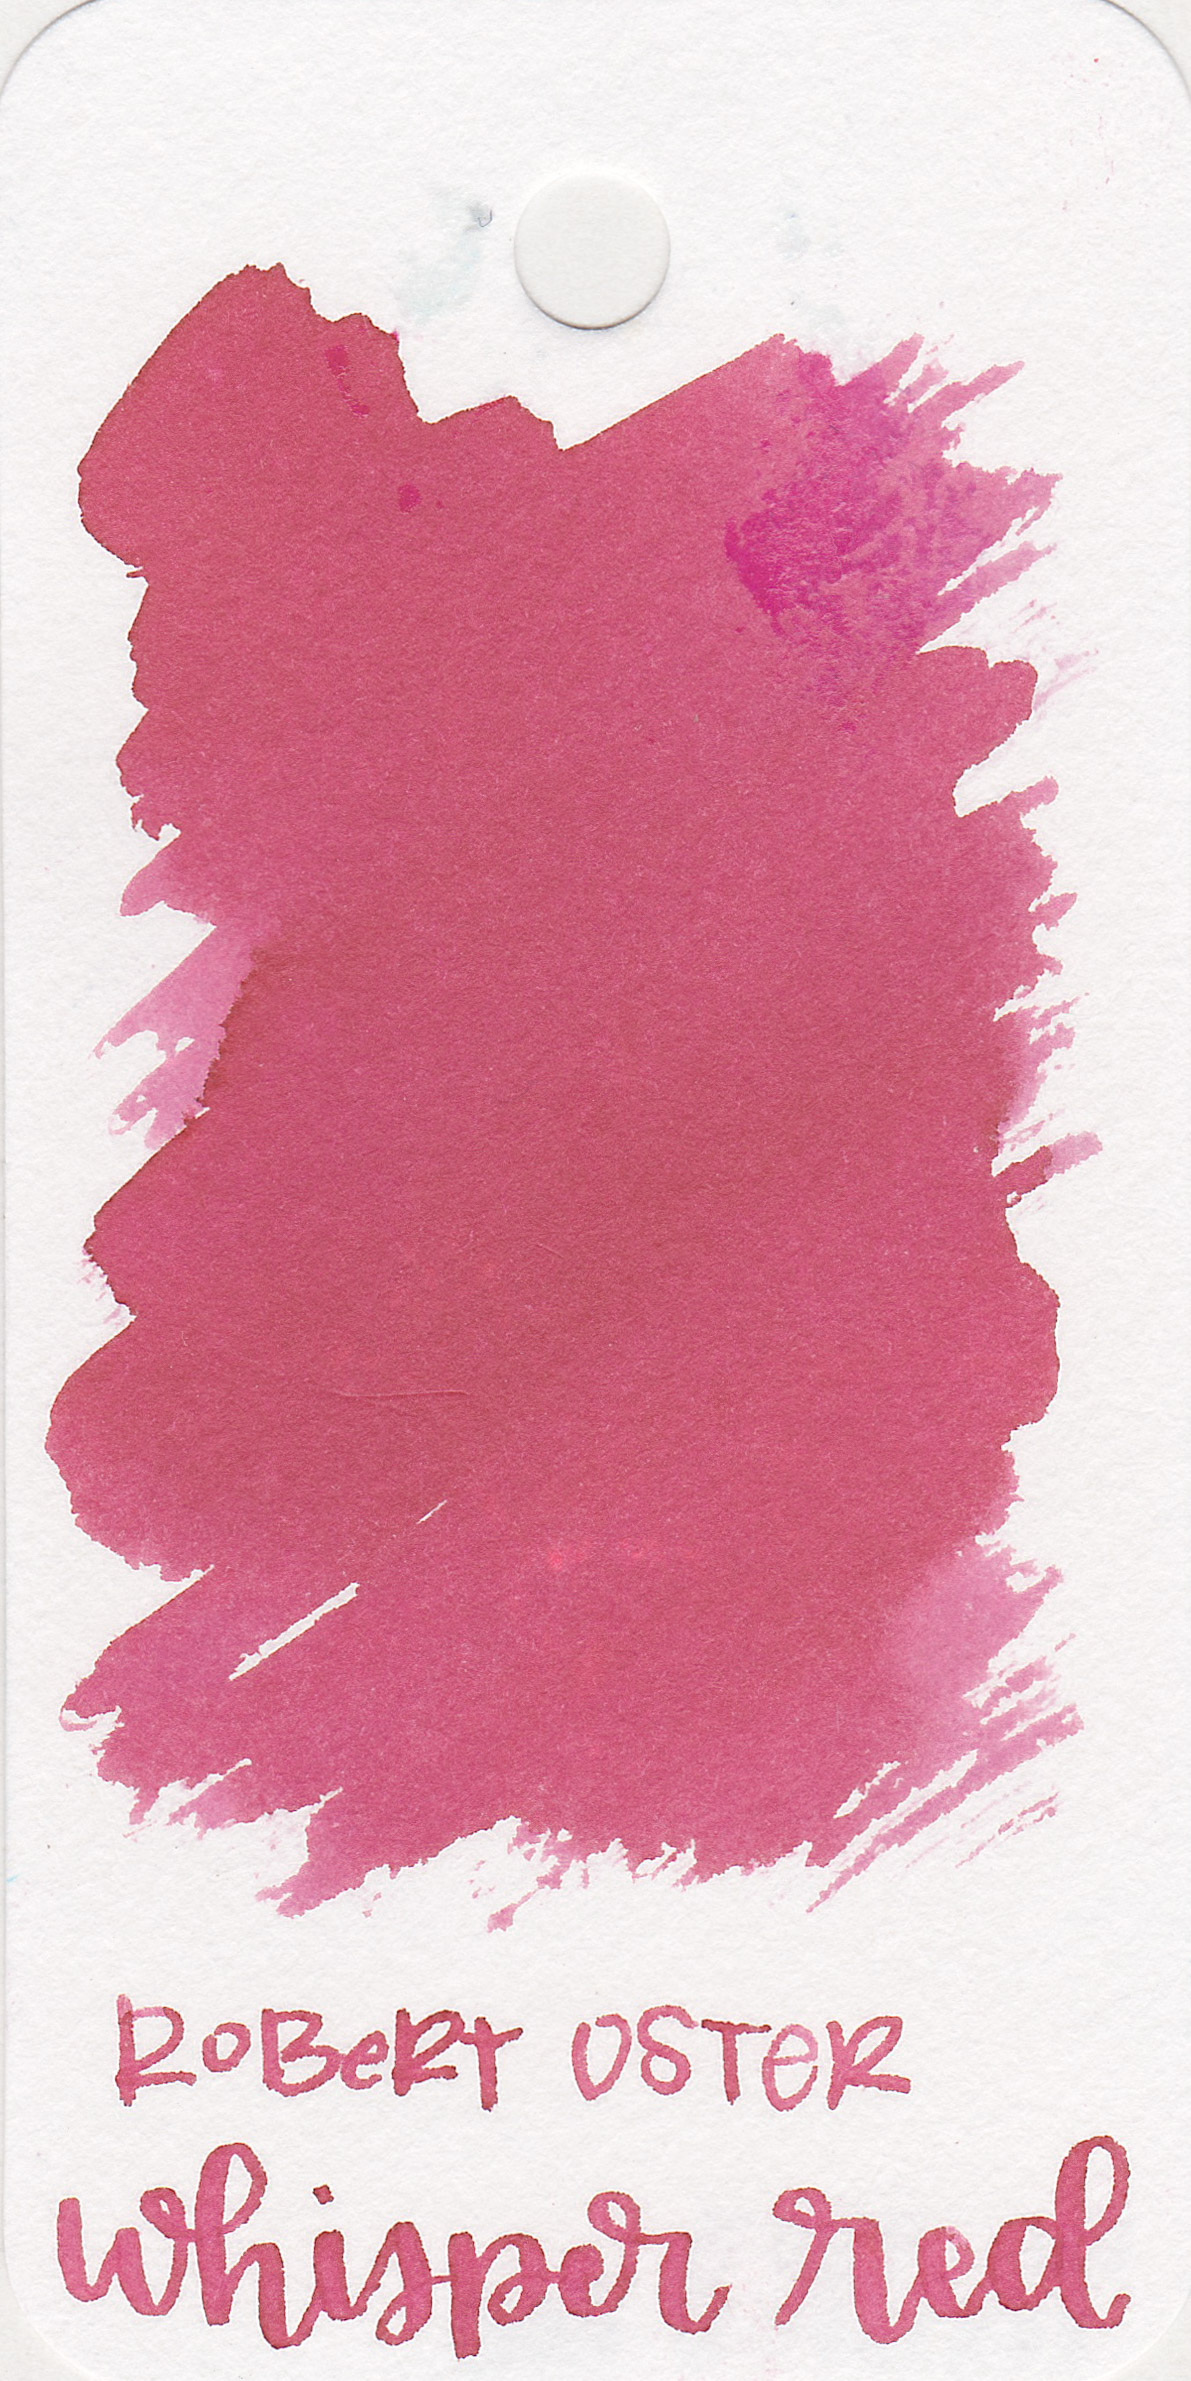 The color: - Whisper Red is a pastel, light red. It's almost a dusky pink but has a bit more red than that.